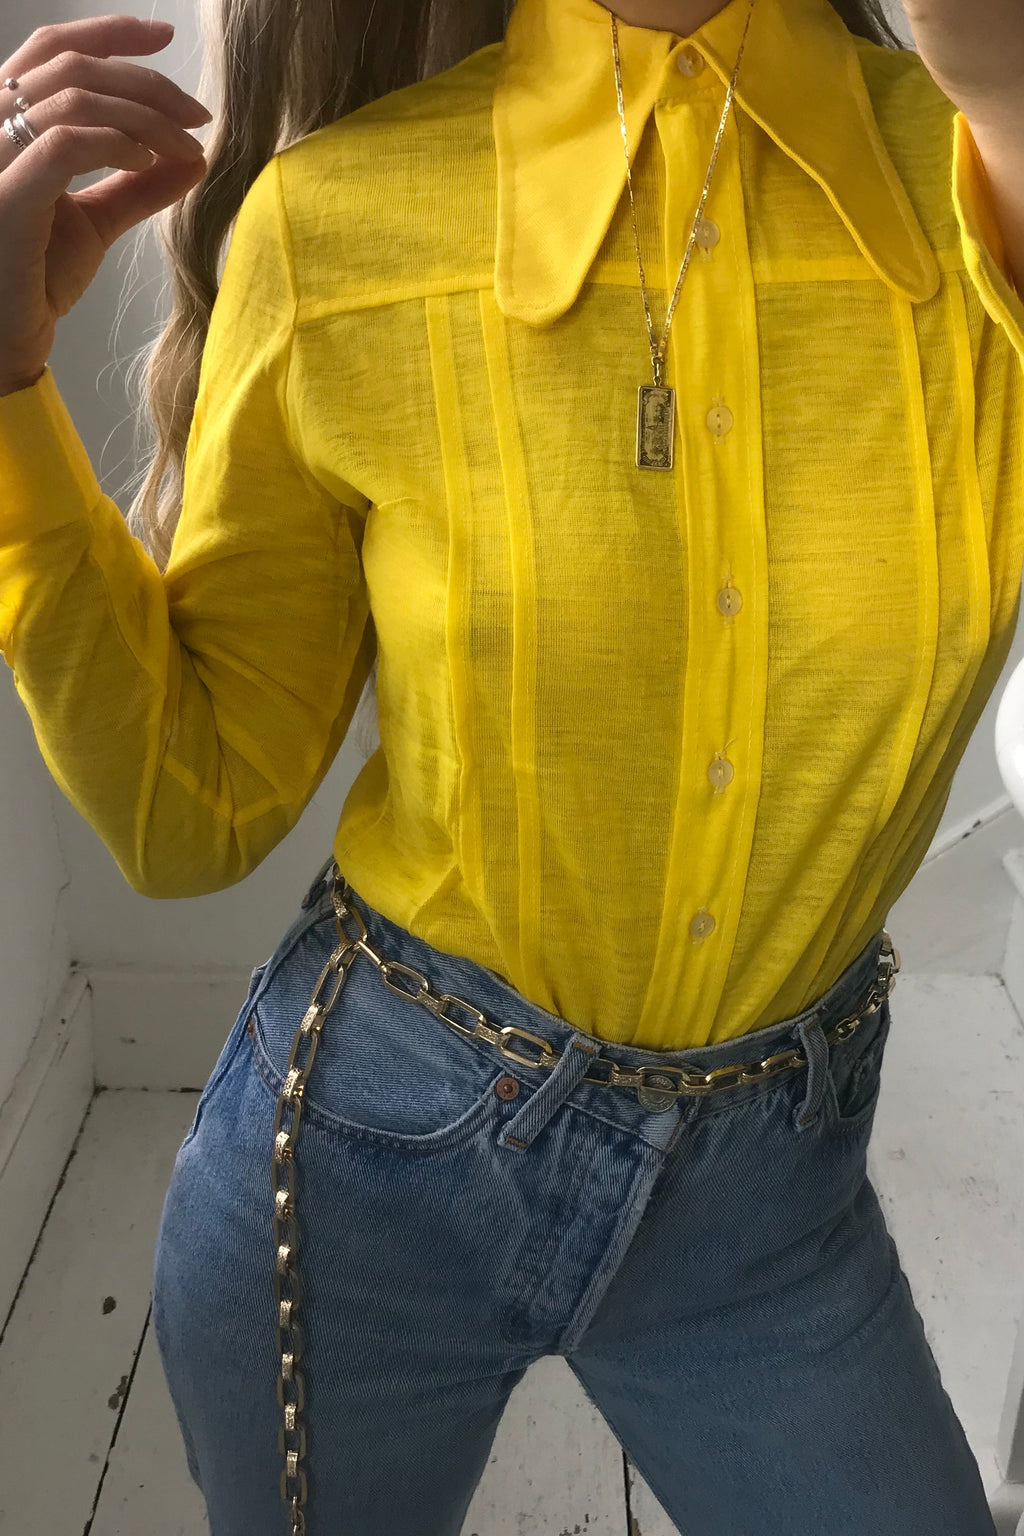 True Vintage 1970s Deadstock Canary Yellow Fitted Shirt With Oversized Statement Collar